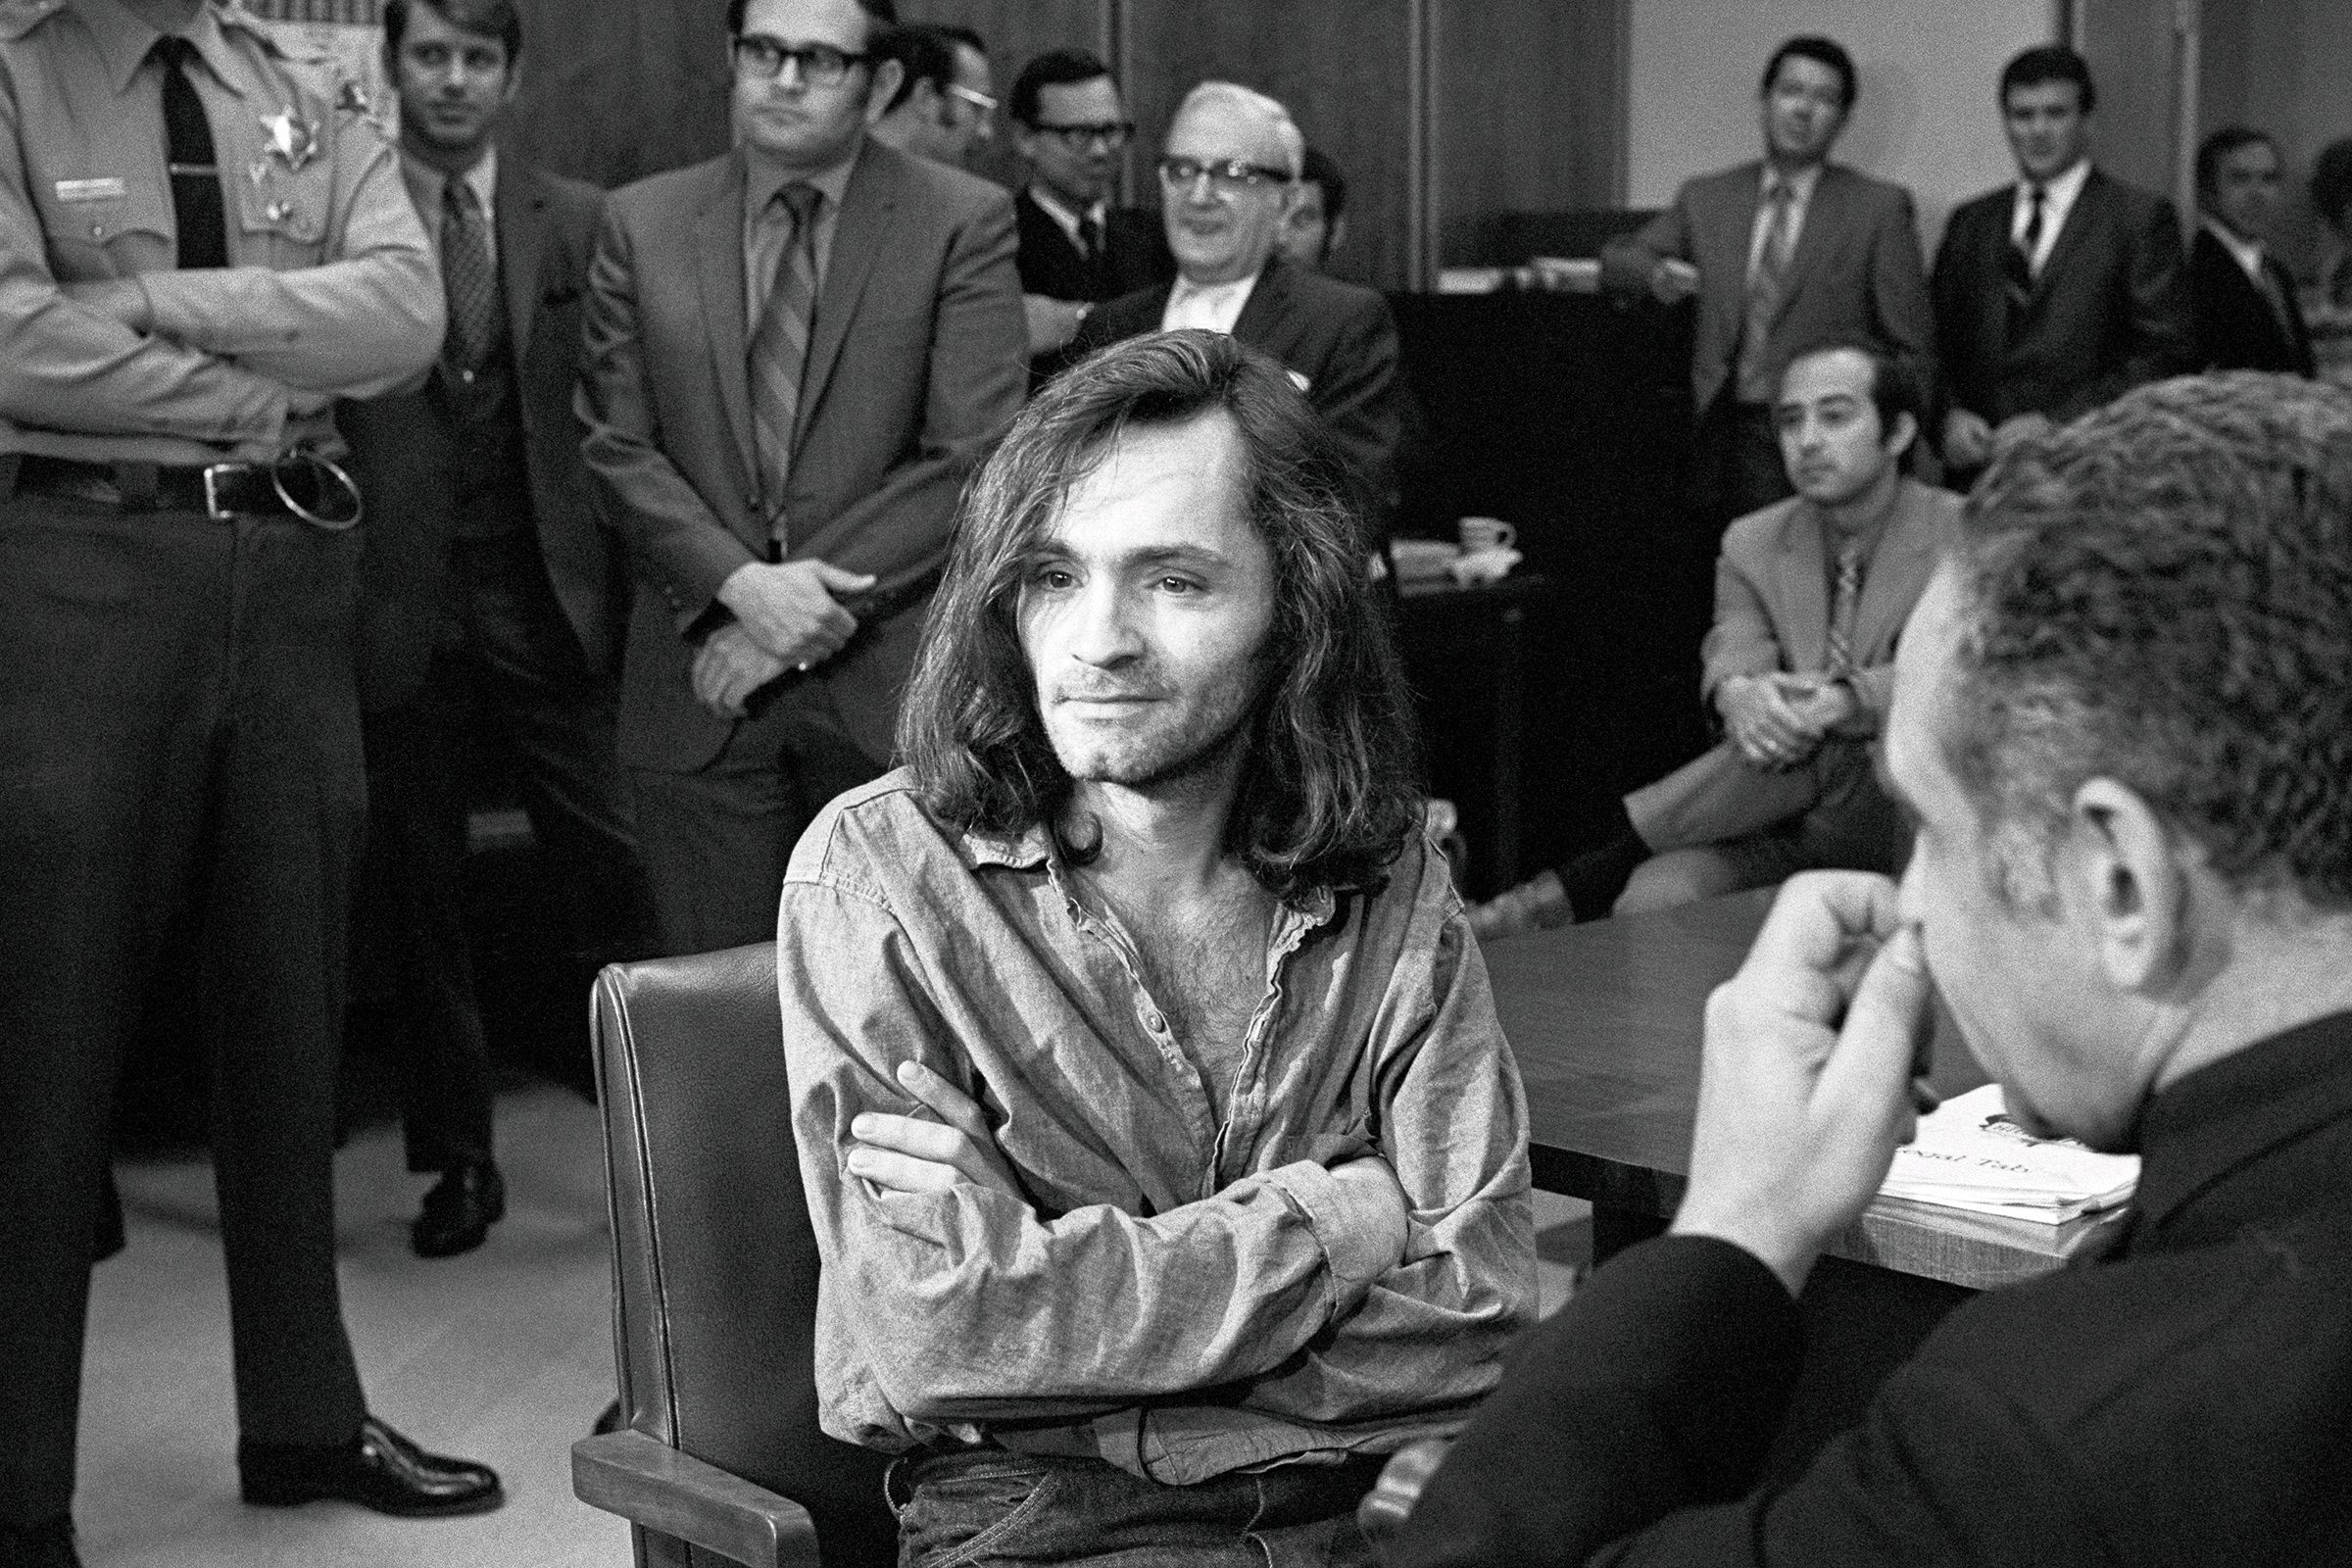 Manson Family Movies to Stream: Films That Go Inside 1969 Cult ...